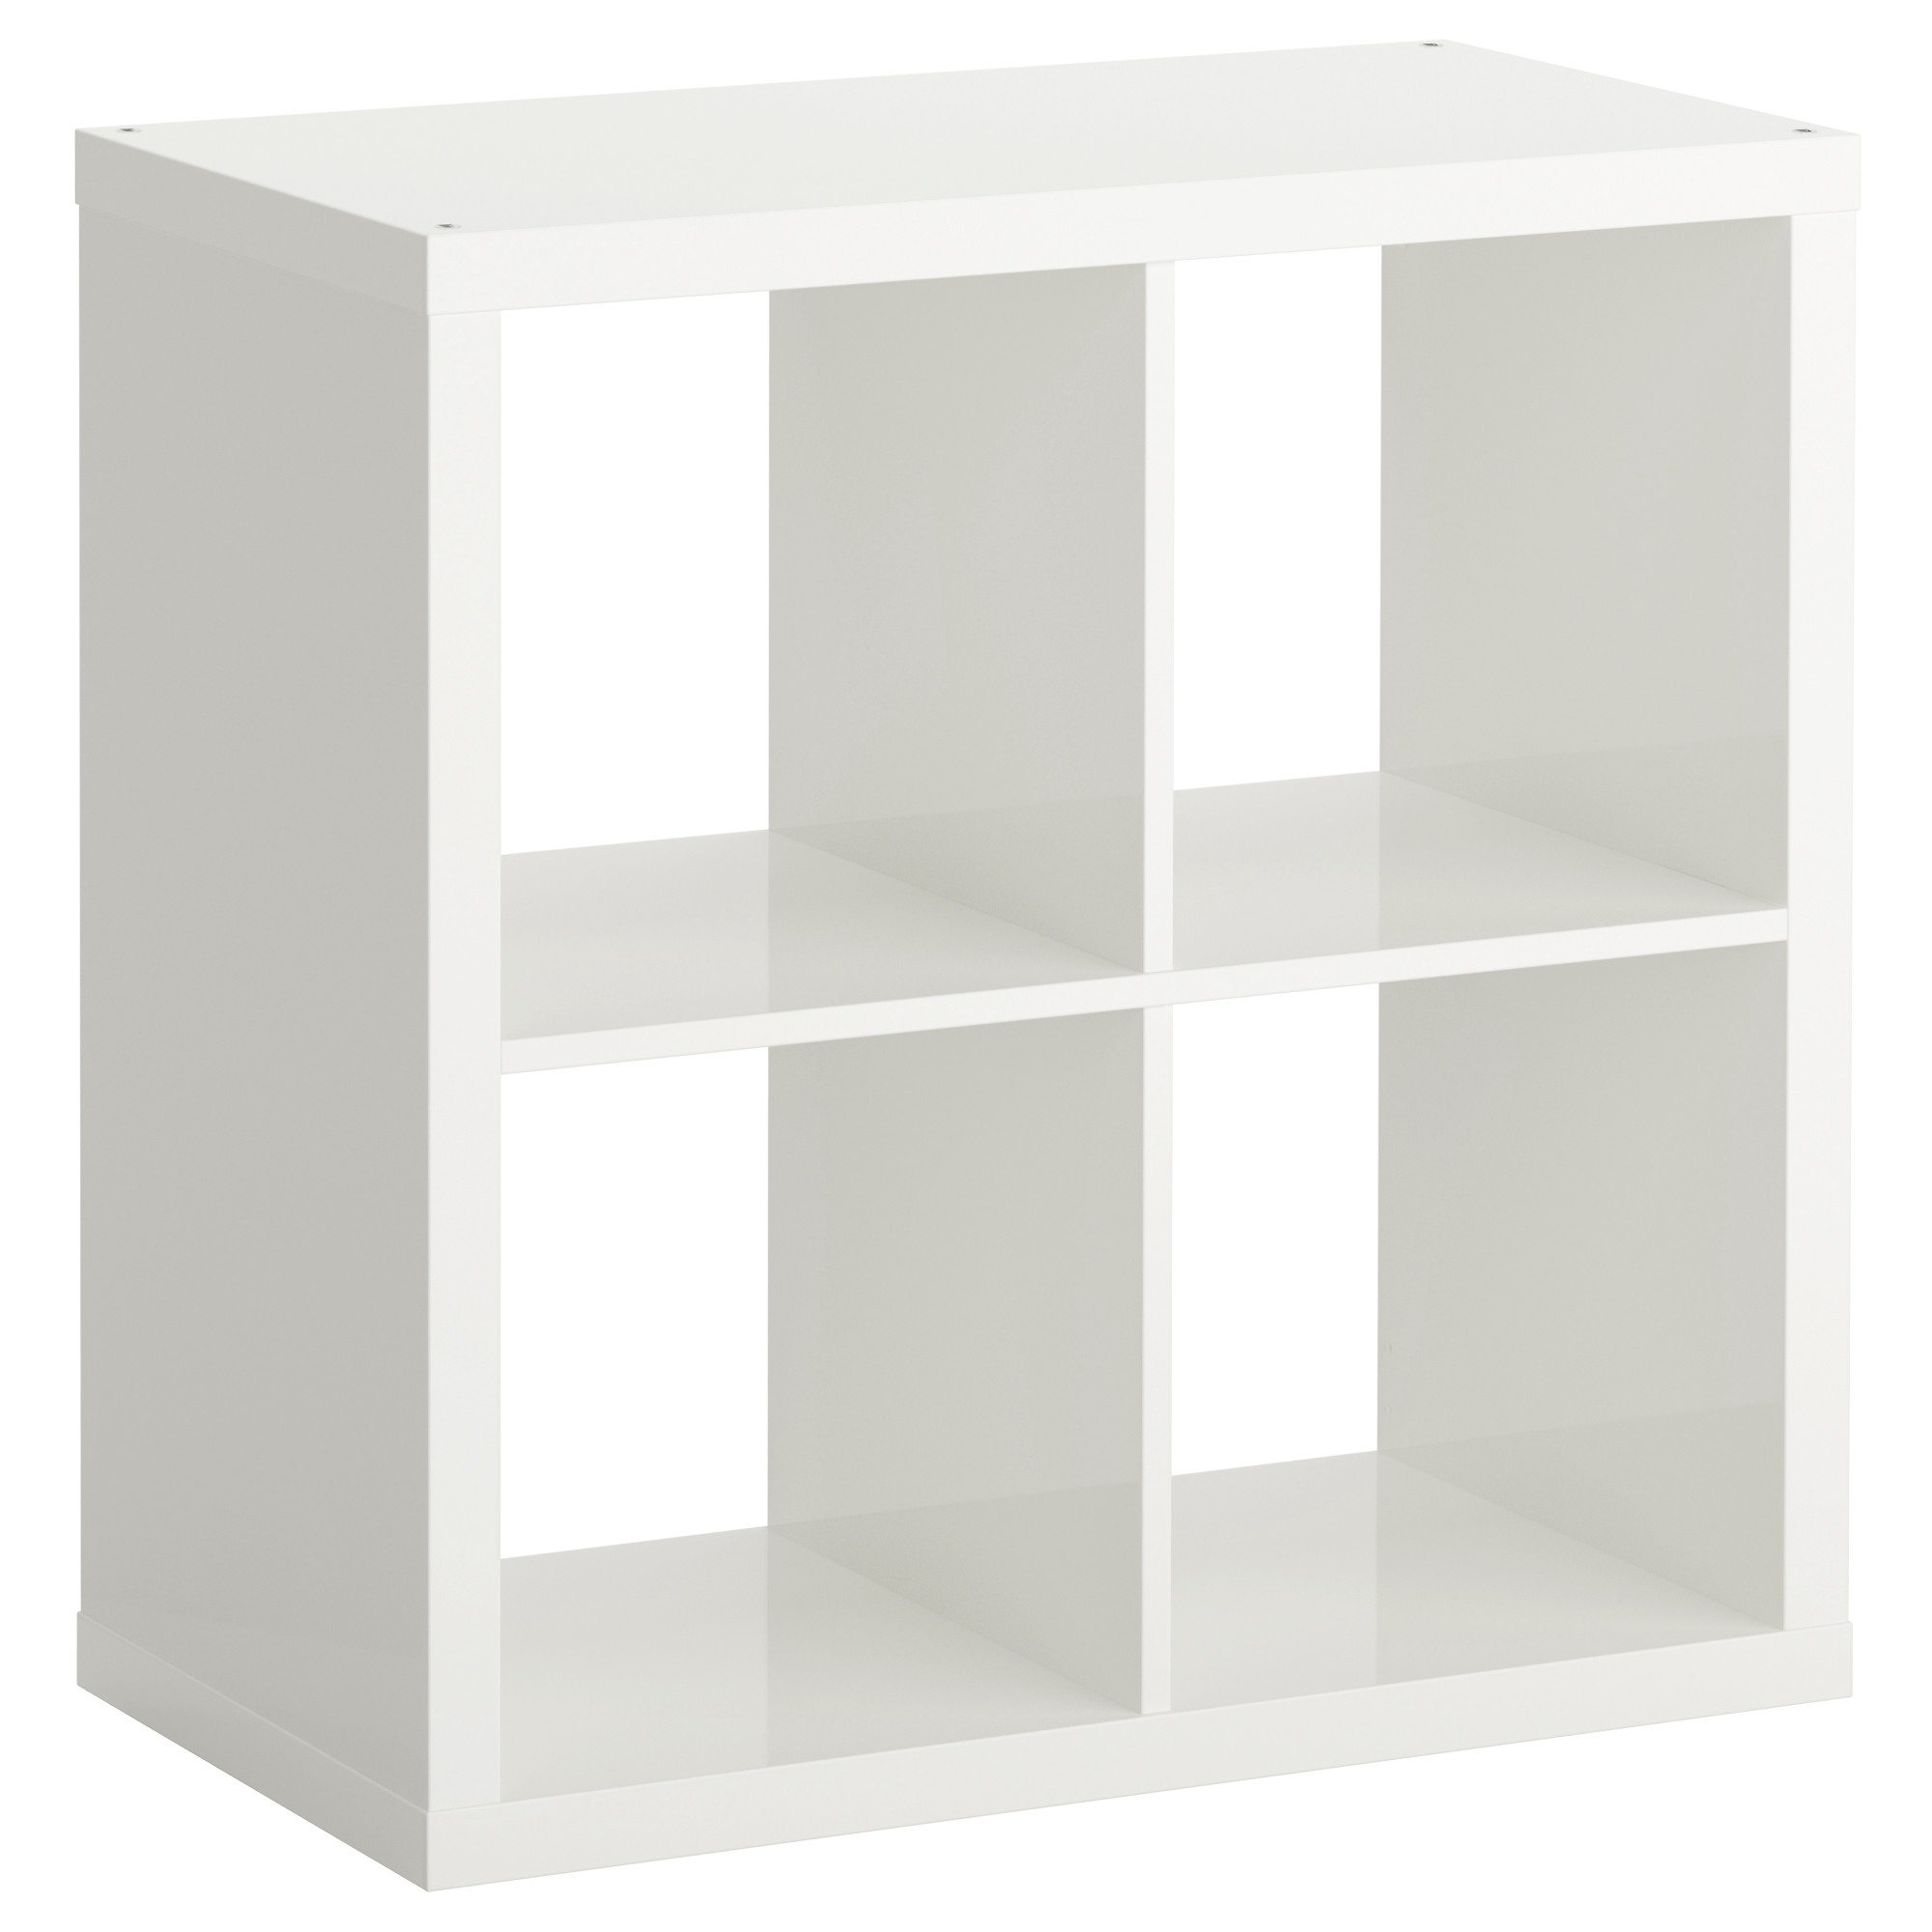 Popular Ikea White Bookcases Throughout Kallax Shelf Unit – High Gloss White – Ikea (View 12 of 15)